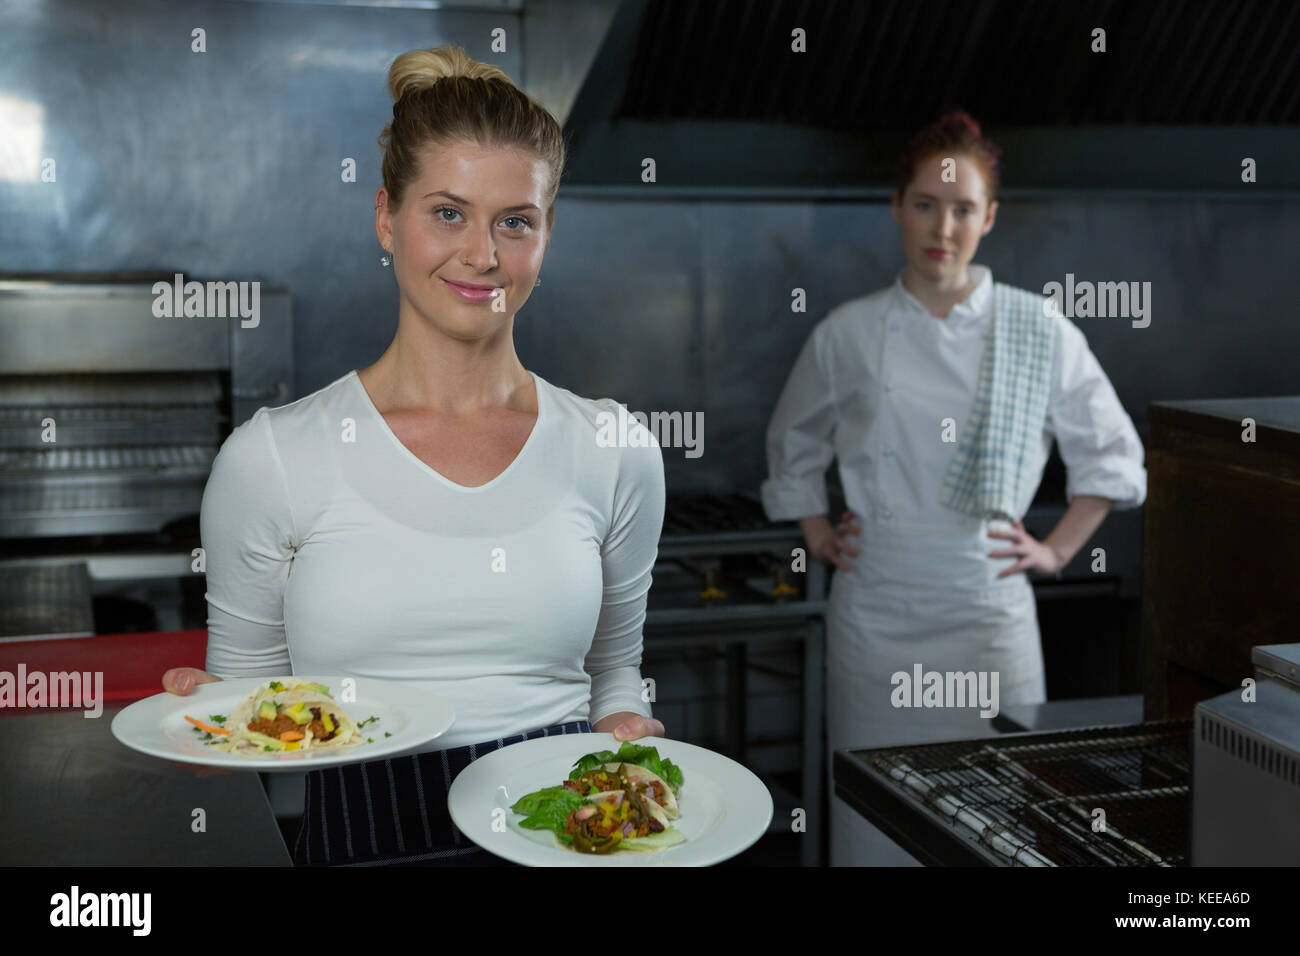 Woman Holding Plates In Kitchen Stock Photos & Woman Holding Plates ...